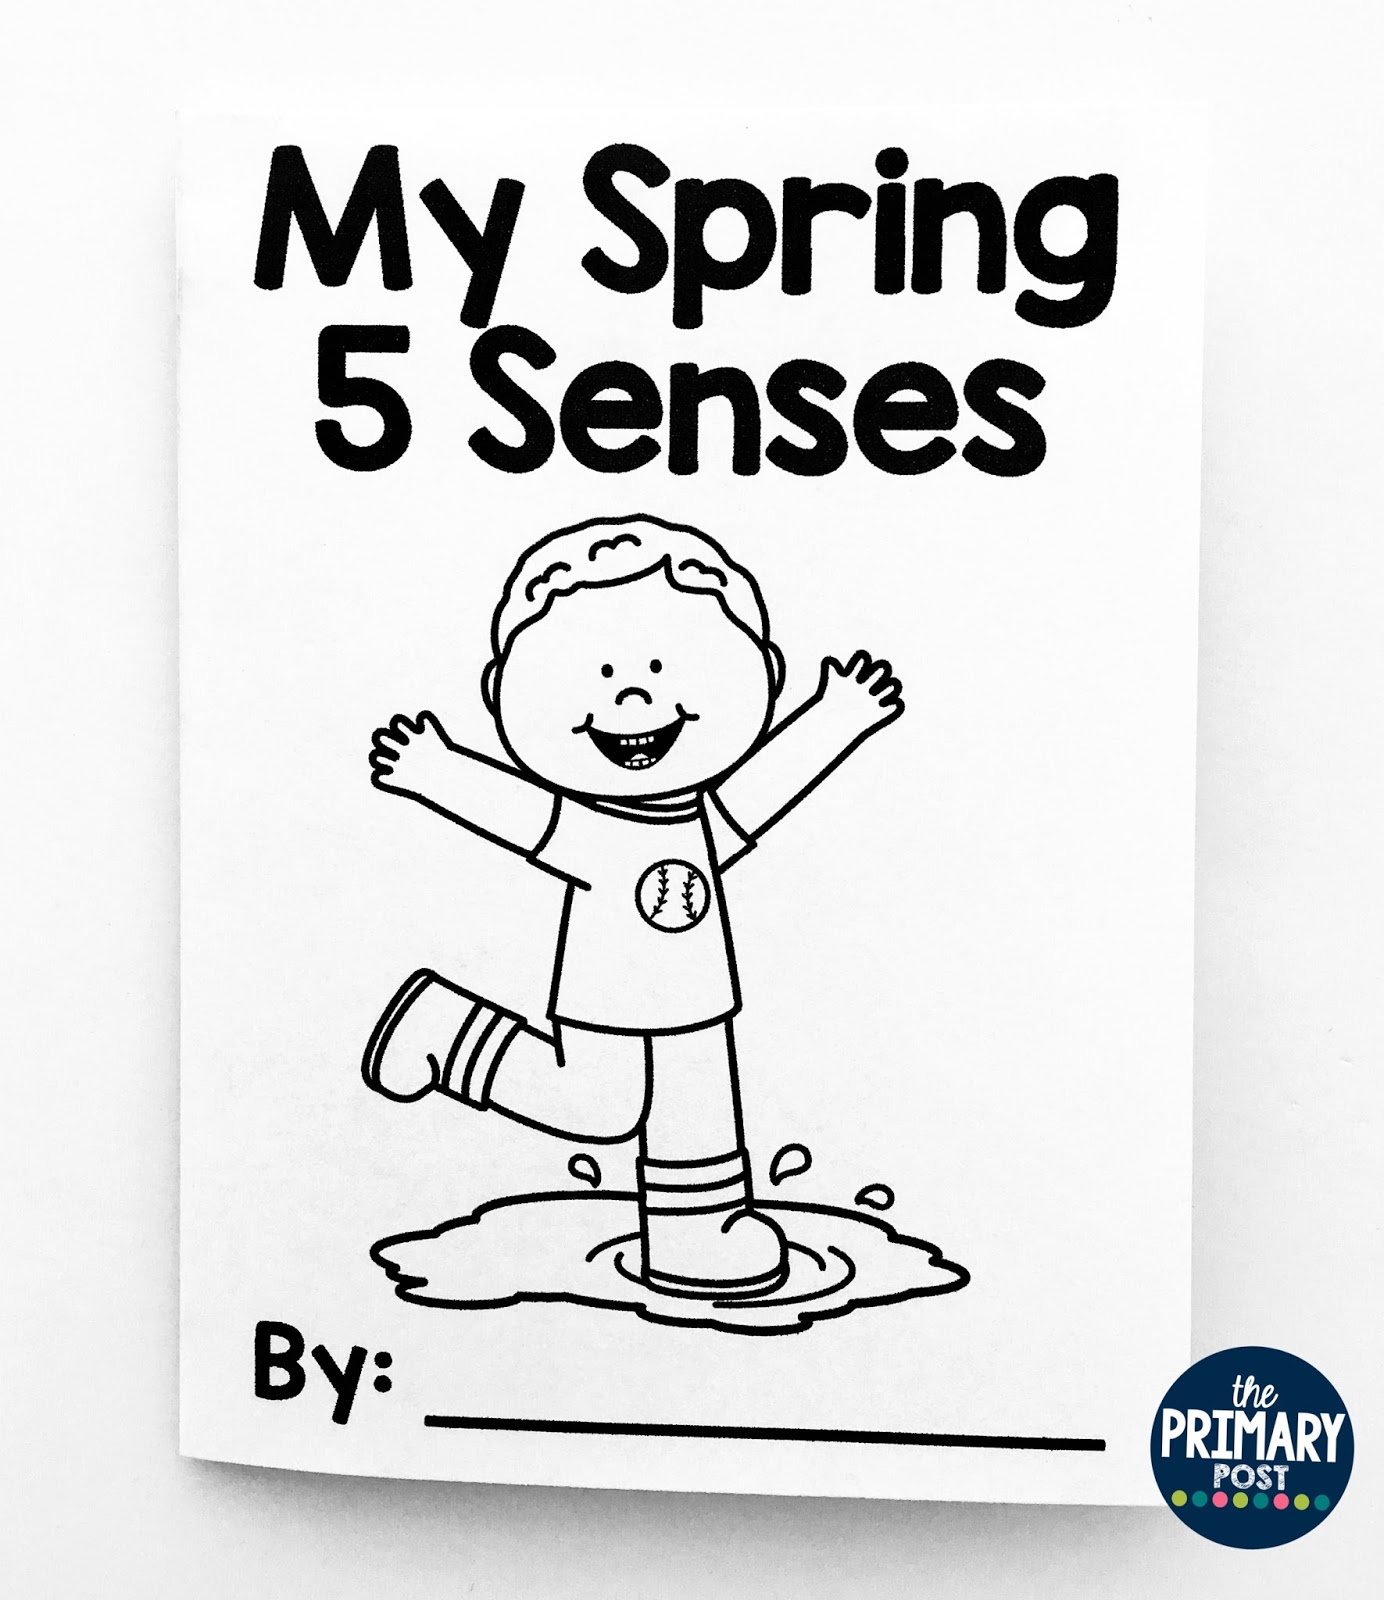 photograph about My Five Senses Book Free Printable referred to as Spring 5 Senses Mini E-book FREEBIE - The Basic Article